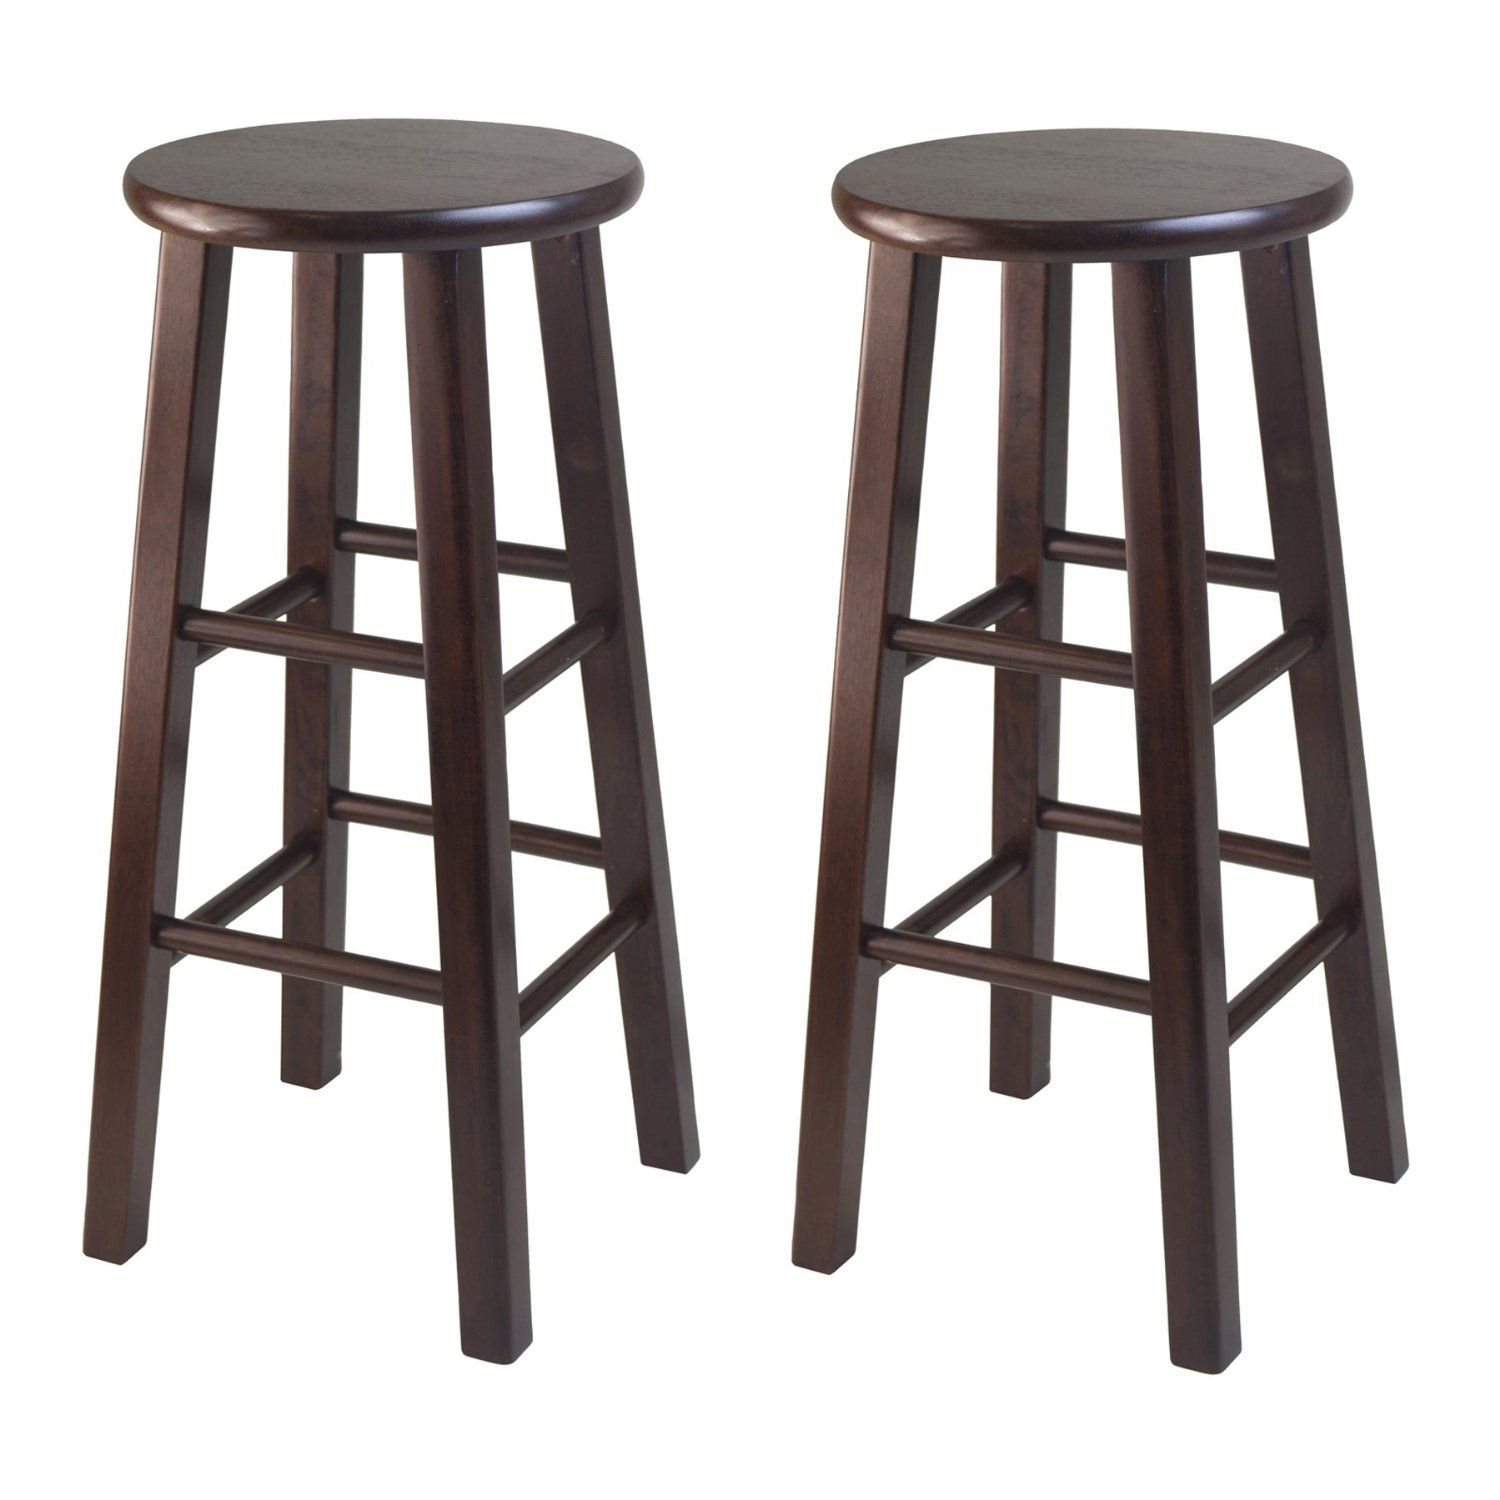 Furniture Traditional Dark Wooden Kitchen Bar Stool With Rounded Seat Extra Tall Bar Stools  sc 1 st  Pinterest : extra tall wood bar stools - islam-shia.org